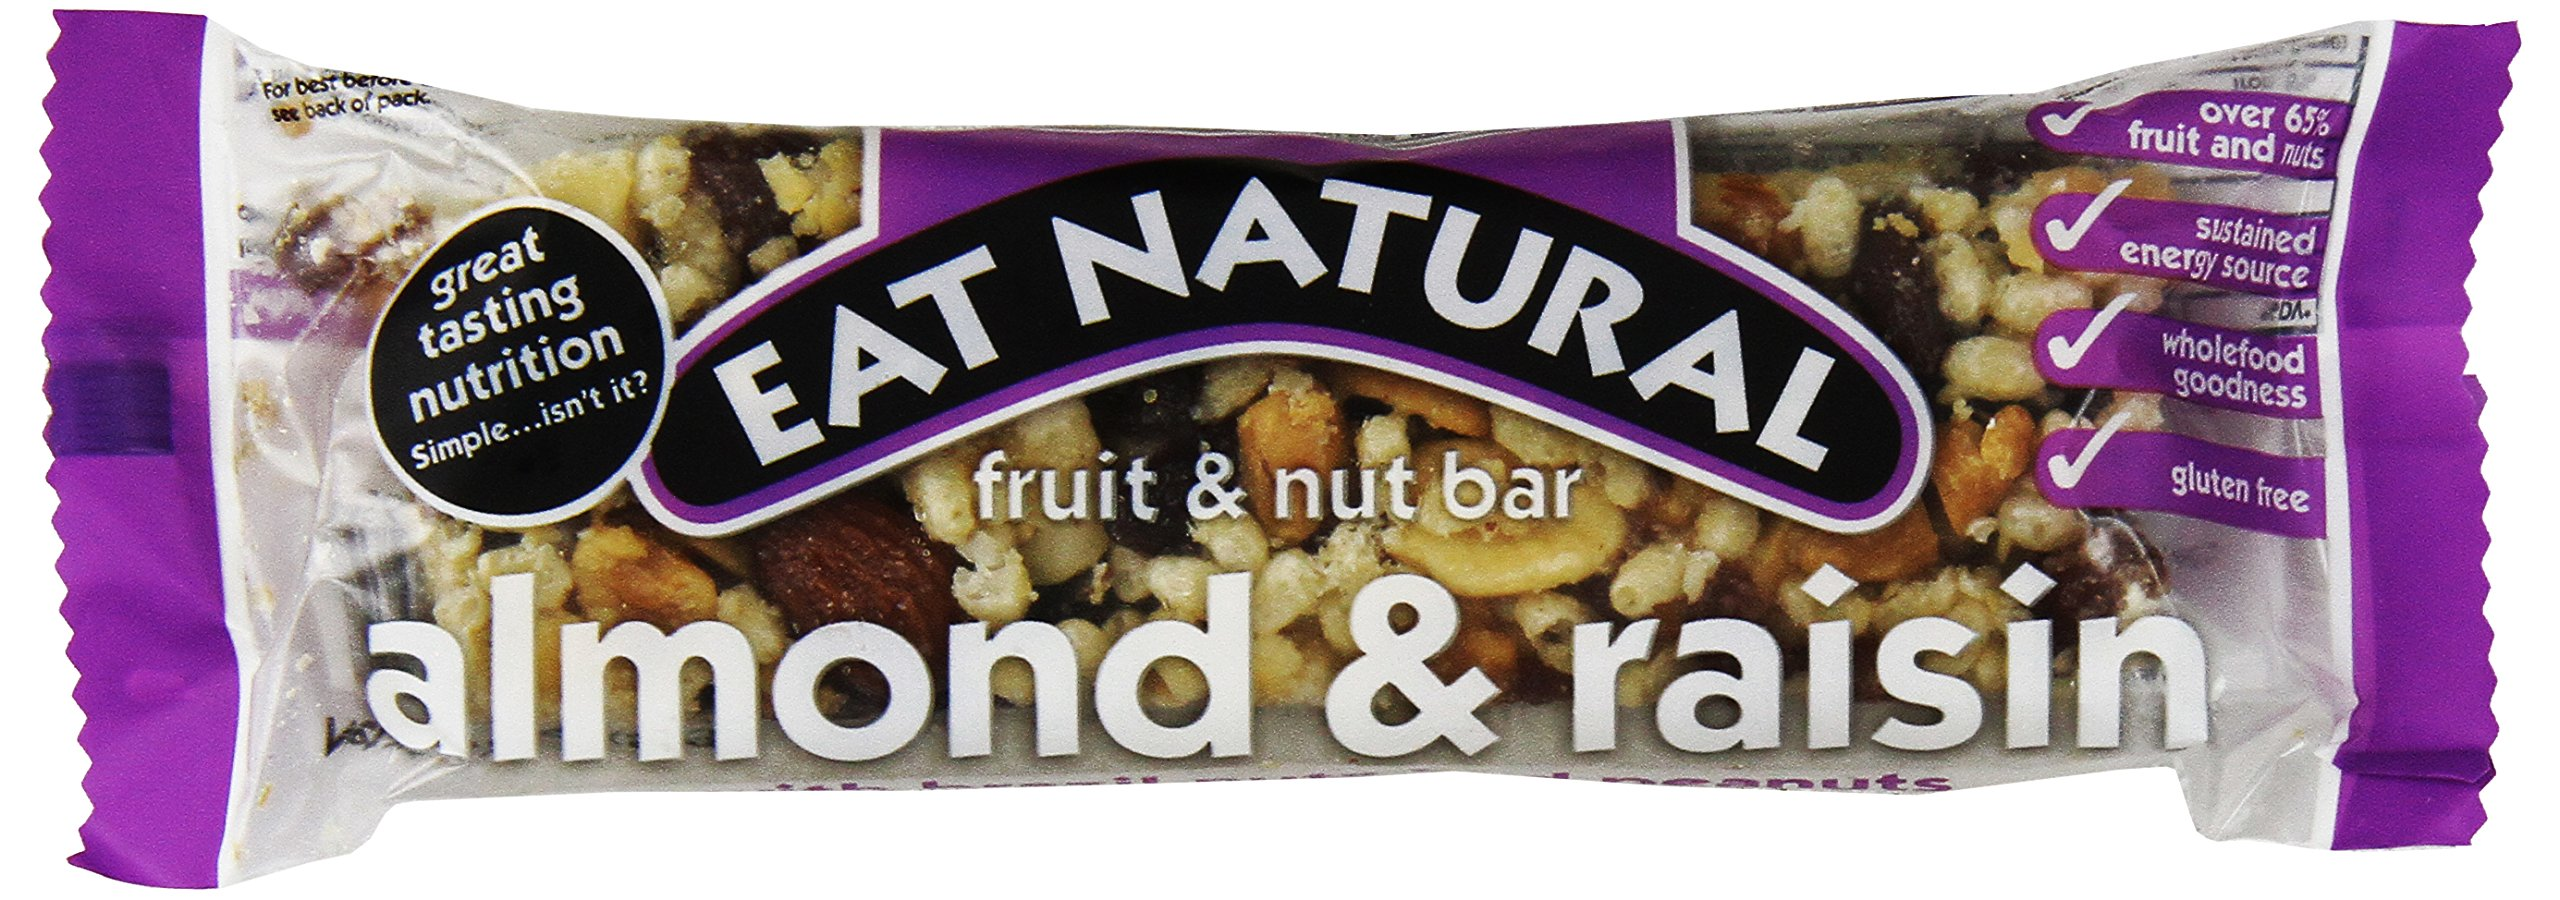 Eat Natural Bars: Almond & Raisin with Brazil Nuts & Peanuts, 1.76-Ounce, 12-Count Boxes